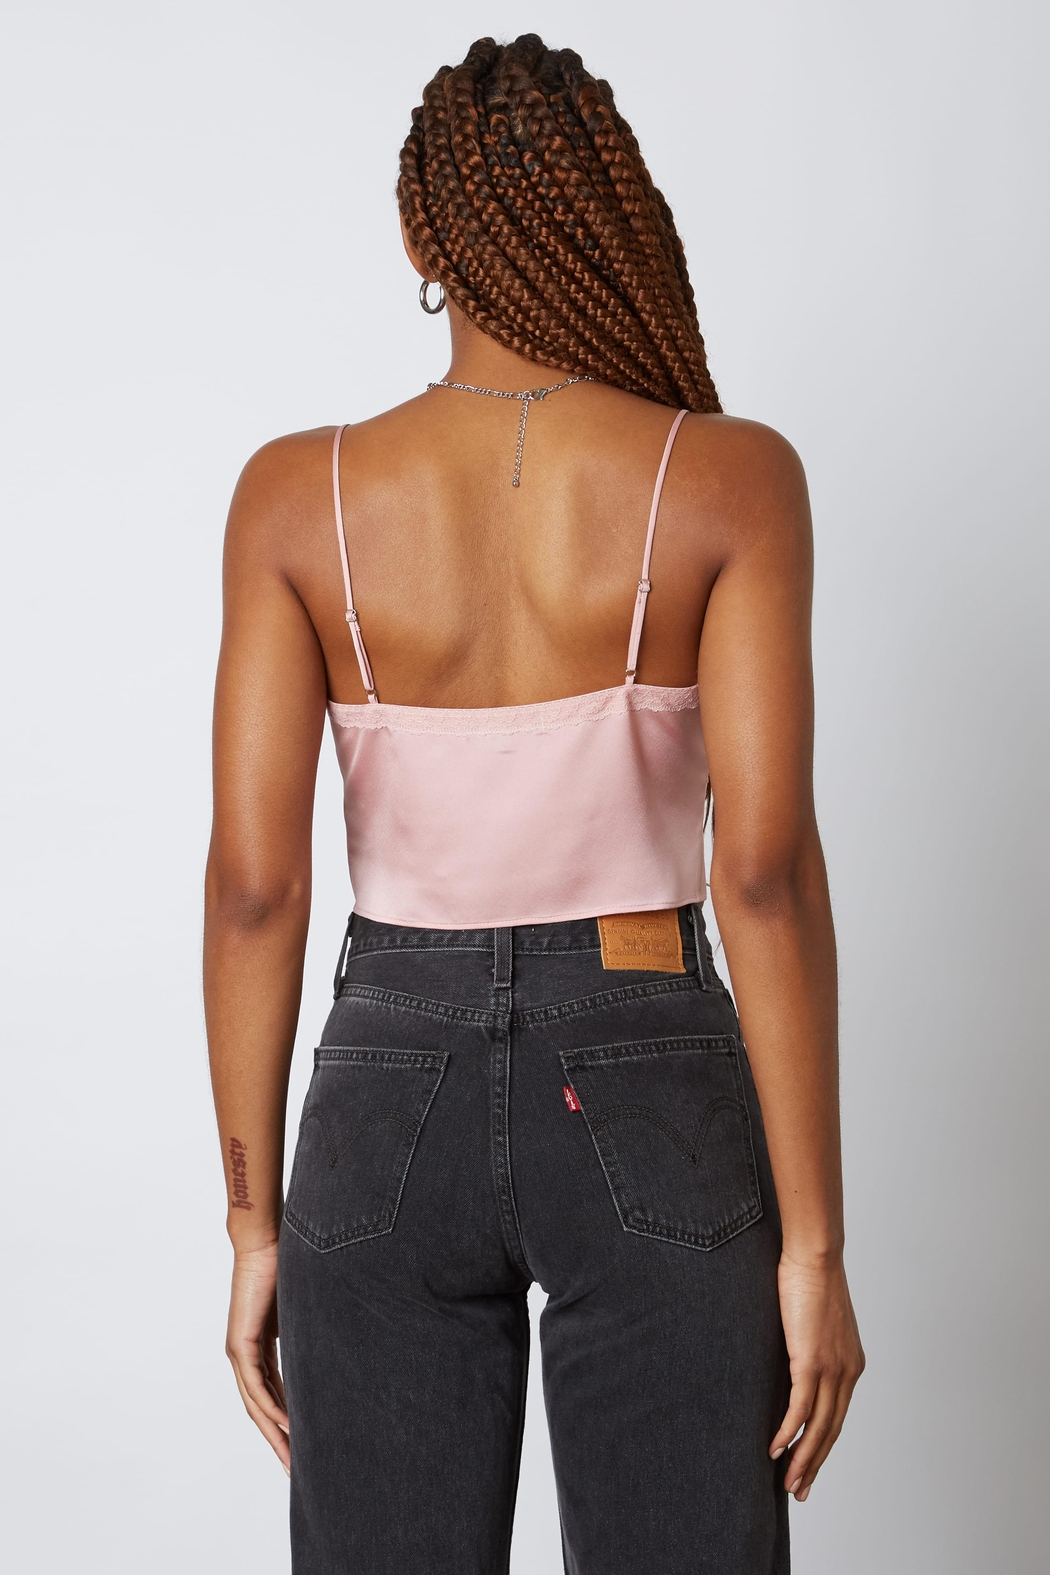 Cotton Candy Satin Tie Front Cami Top - Side Cropped Image